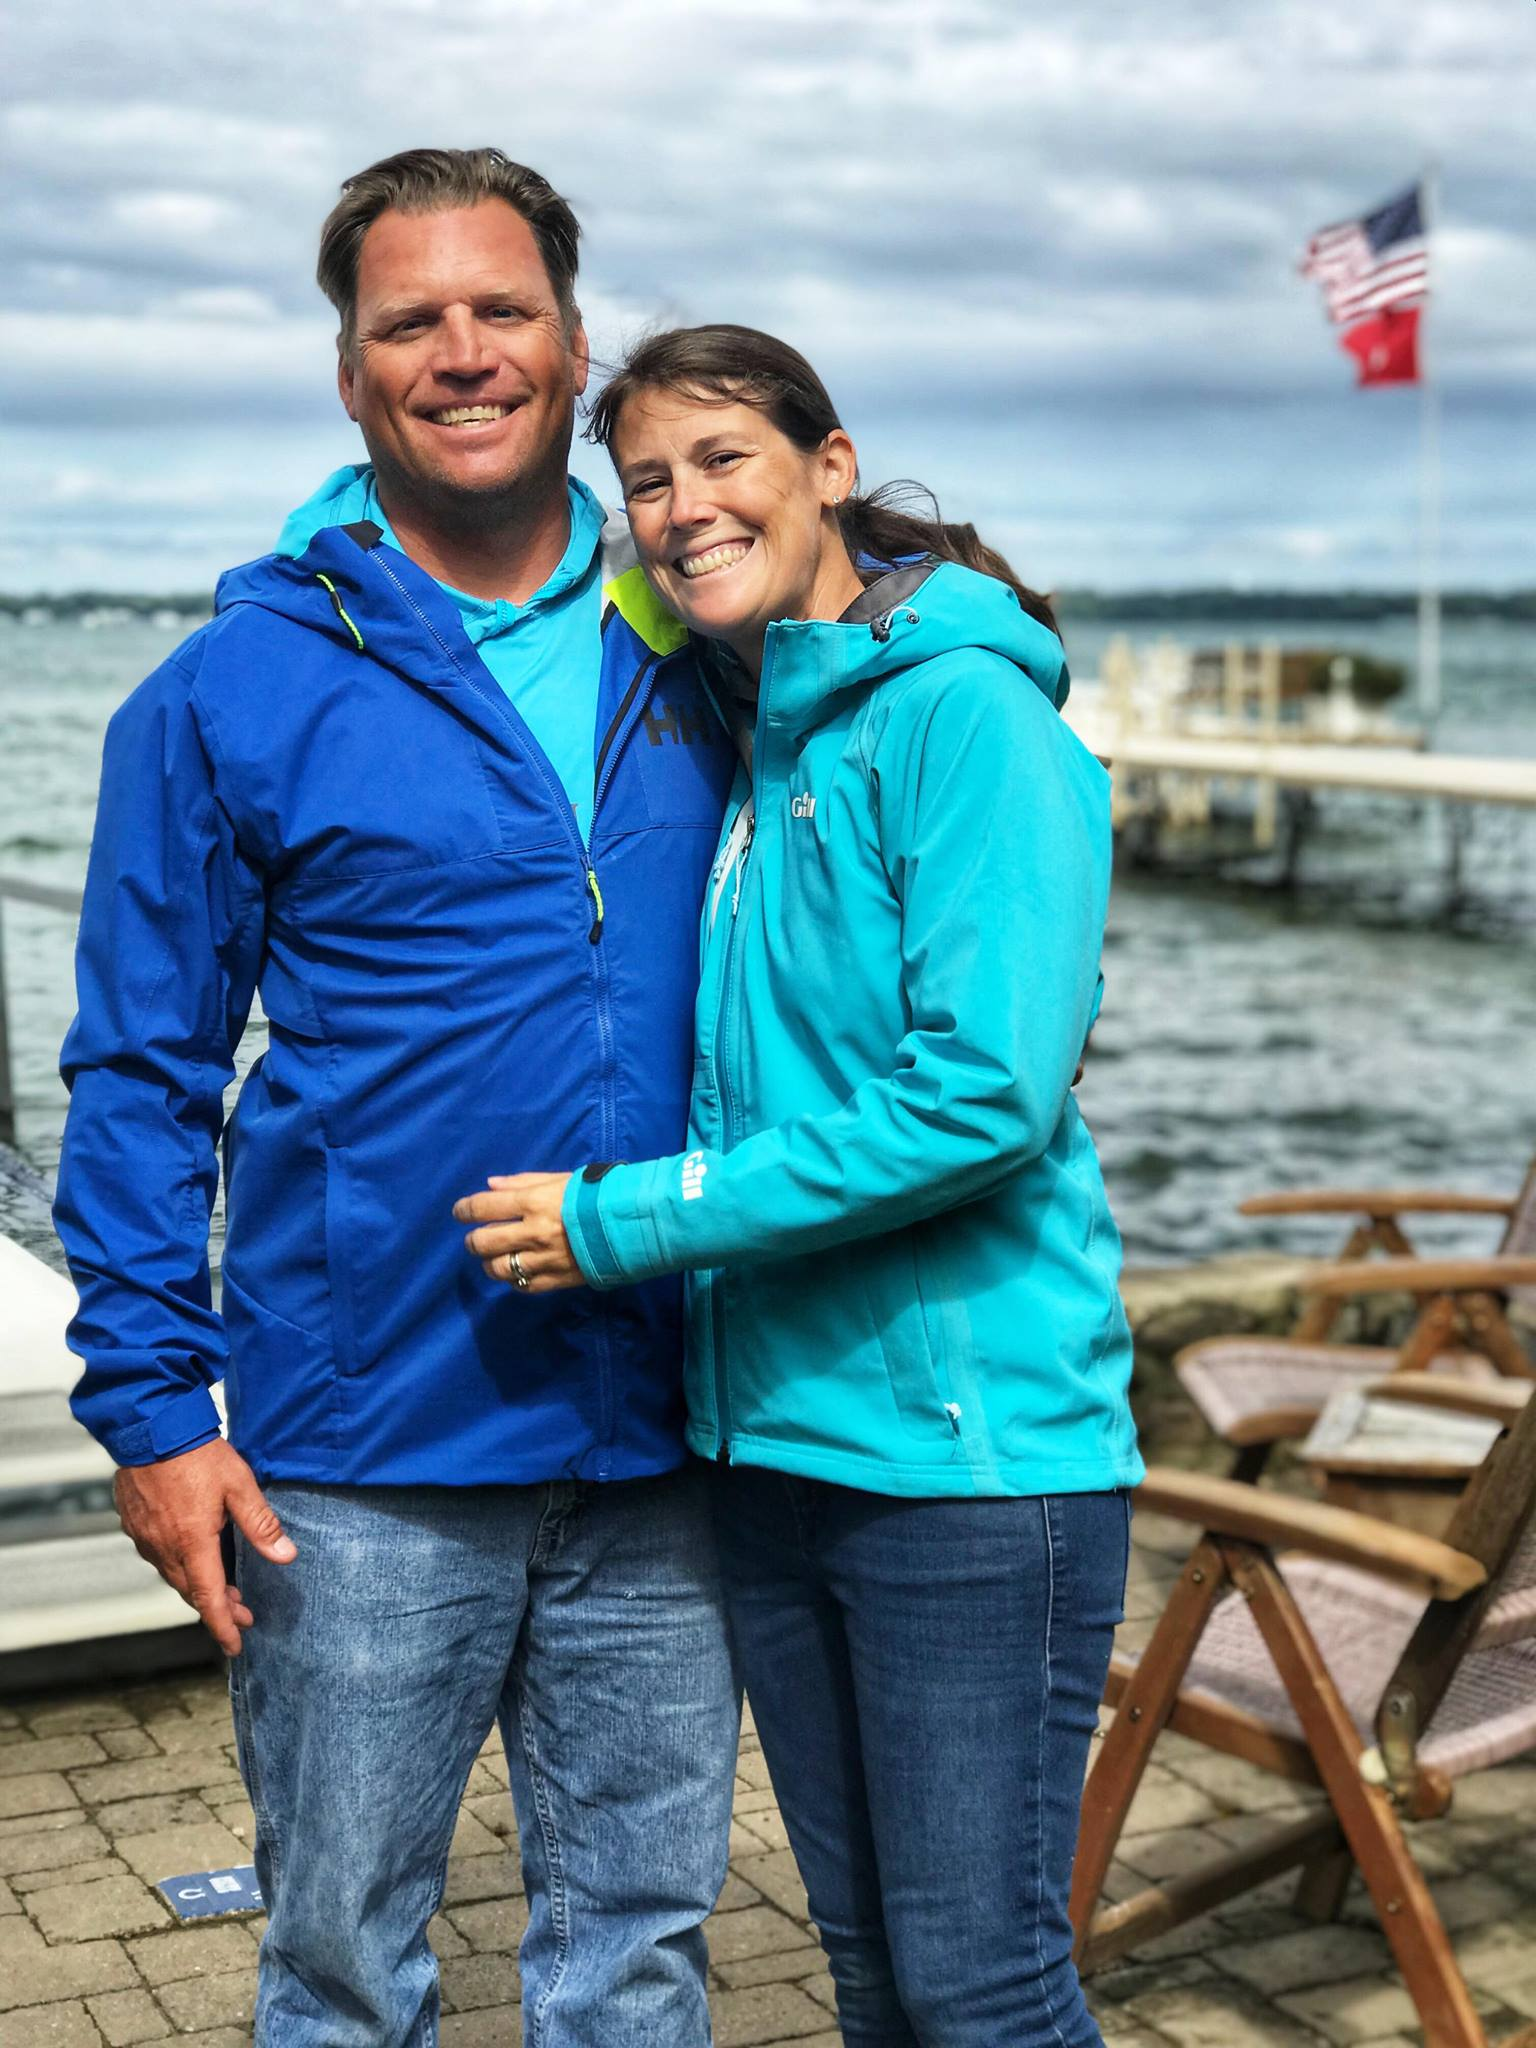 Sail22, LLC Founders & Owners, Becky and Ed Furry